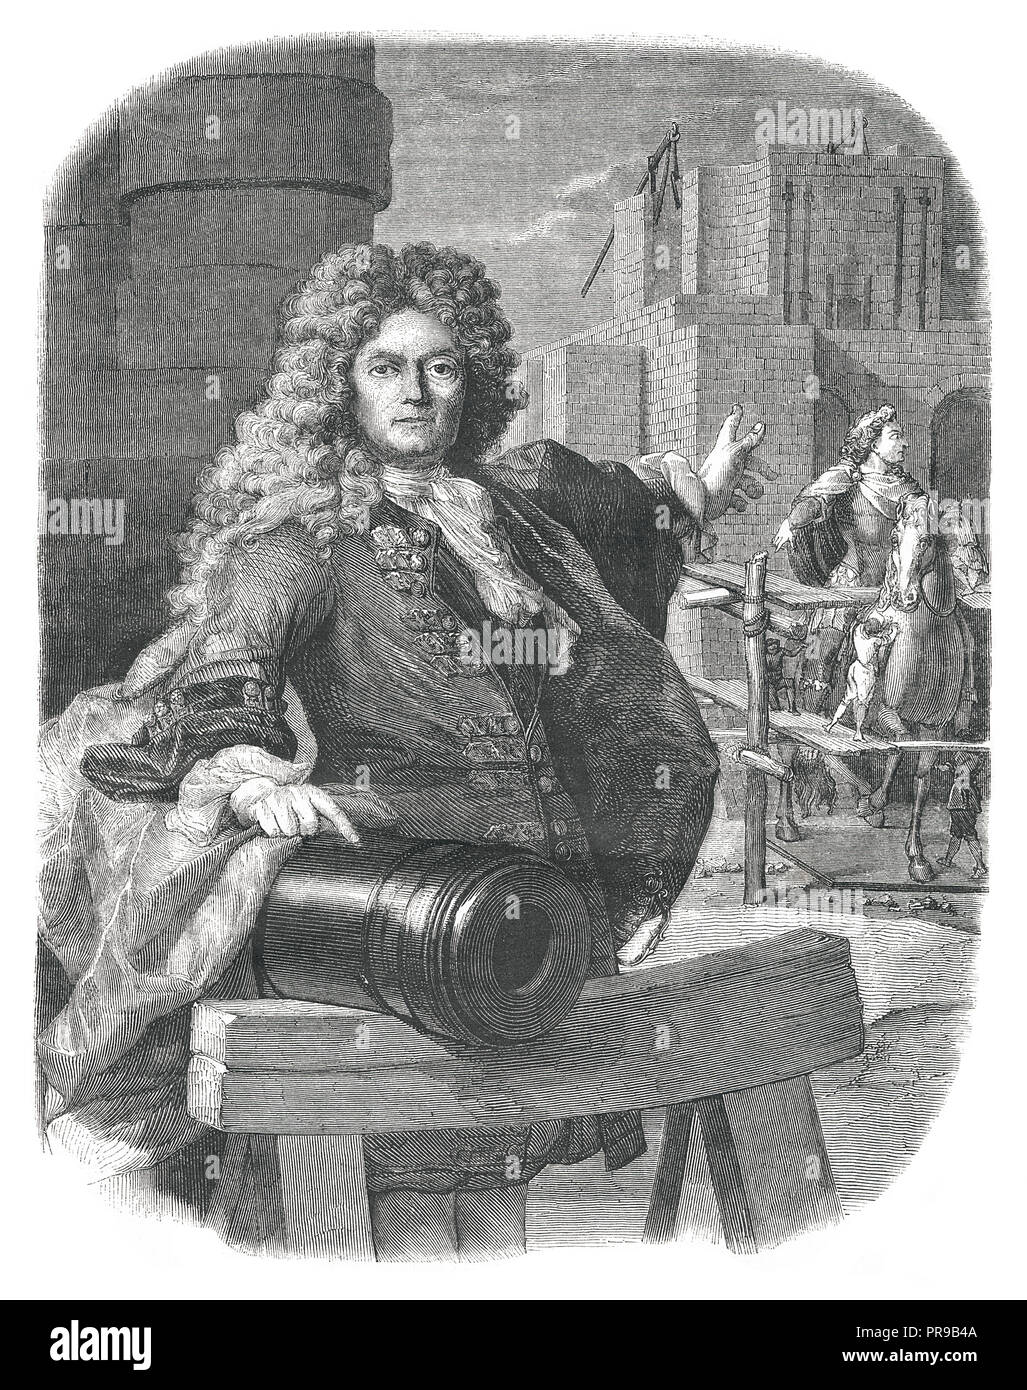 19th century illustration of Jean-Balthazar Keller (1638–1702) who was Swiss gunfounder from Zürich, in the service of France.  After the painting of  - Stock Image